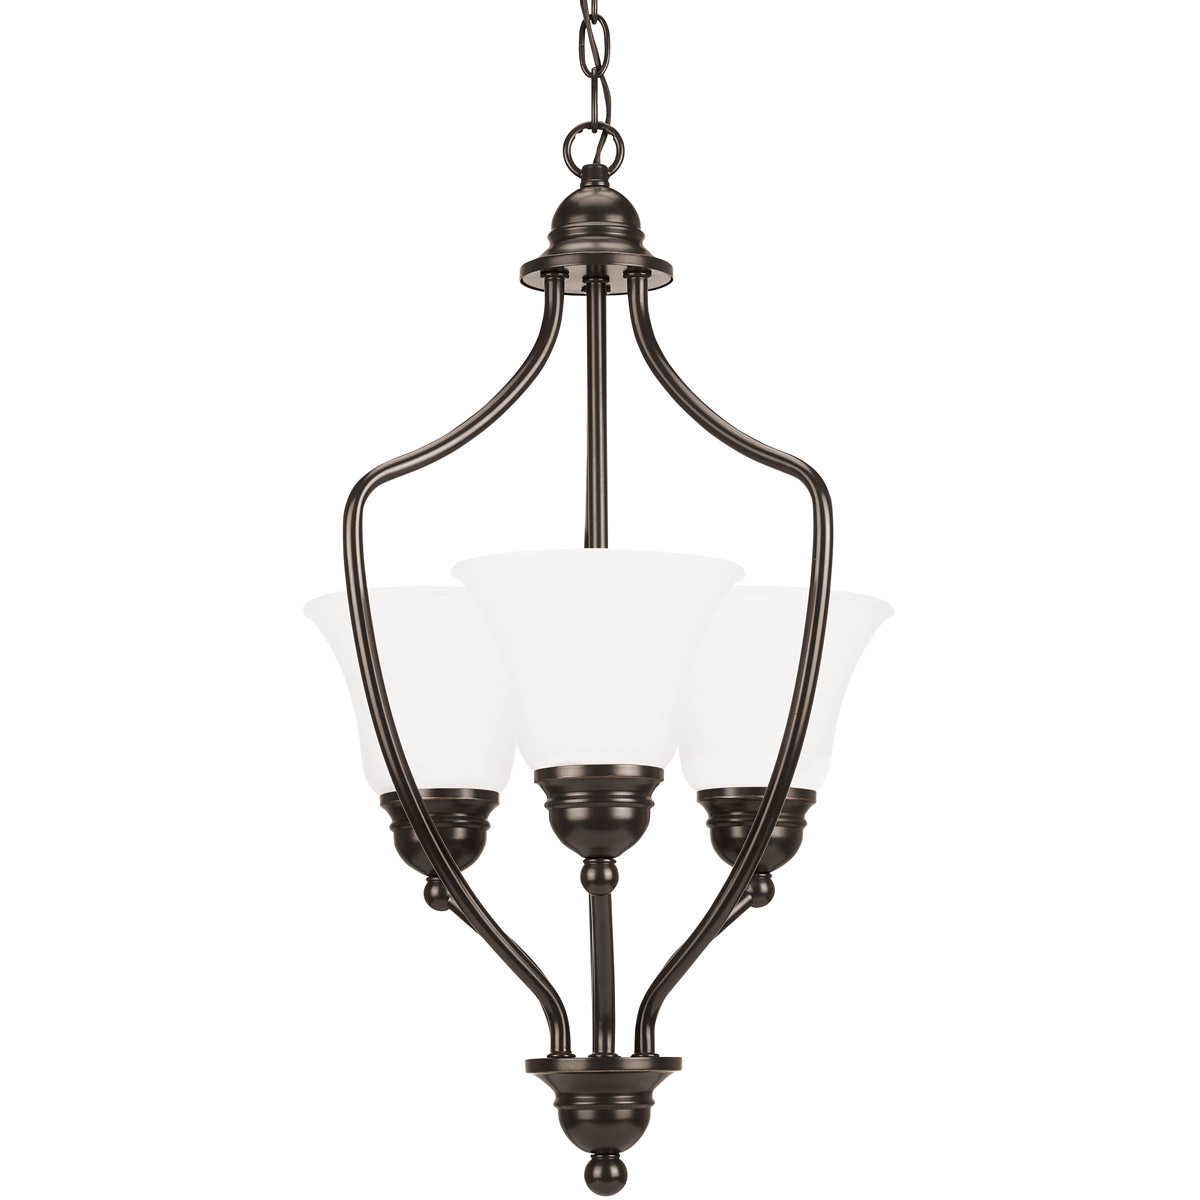 Sea Gull Lighting Signature 3 Light Foyer Pendant in Heirloom Bronze 51410-782